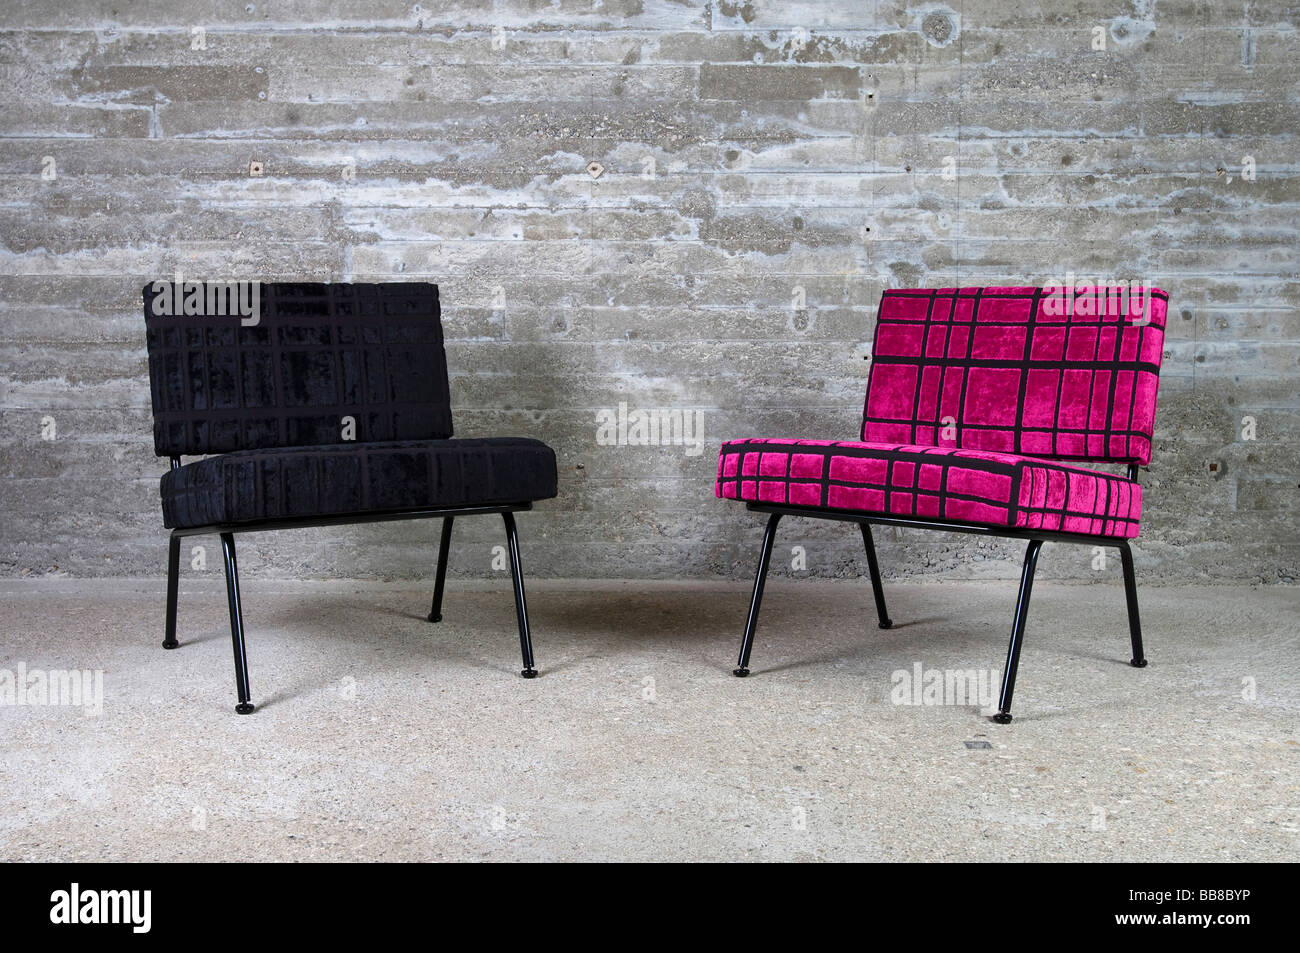 Two upholstered armchairs - Stock Image